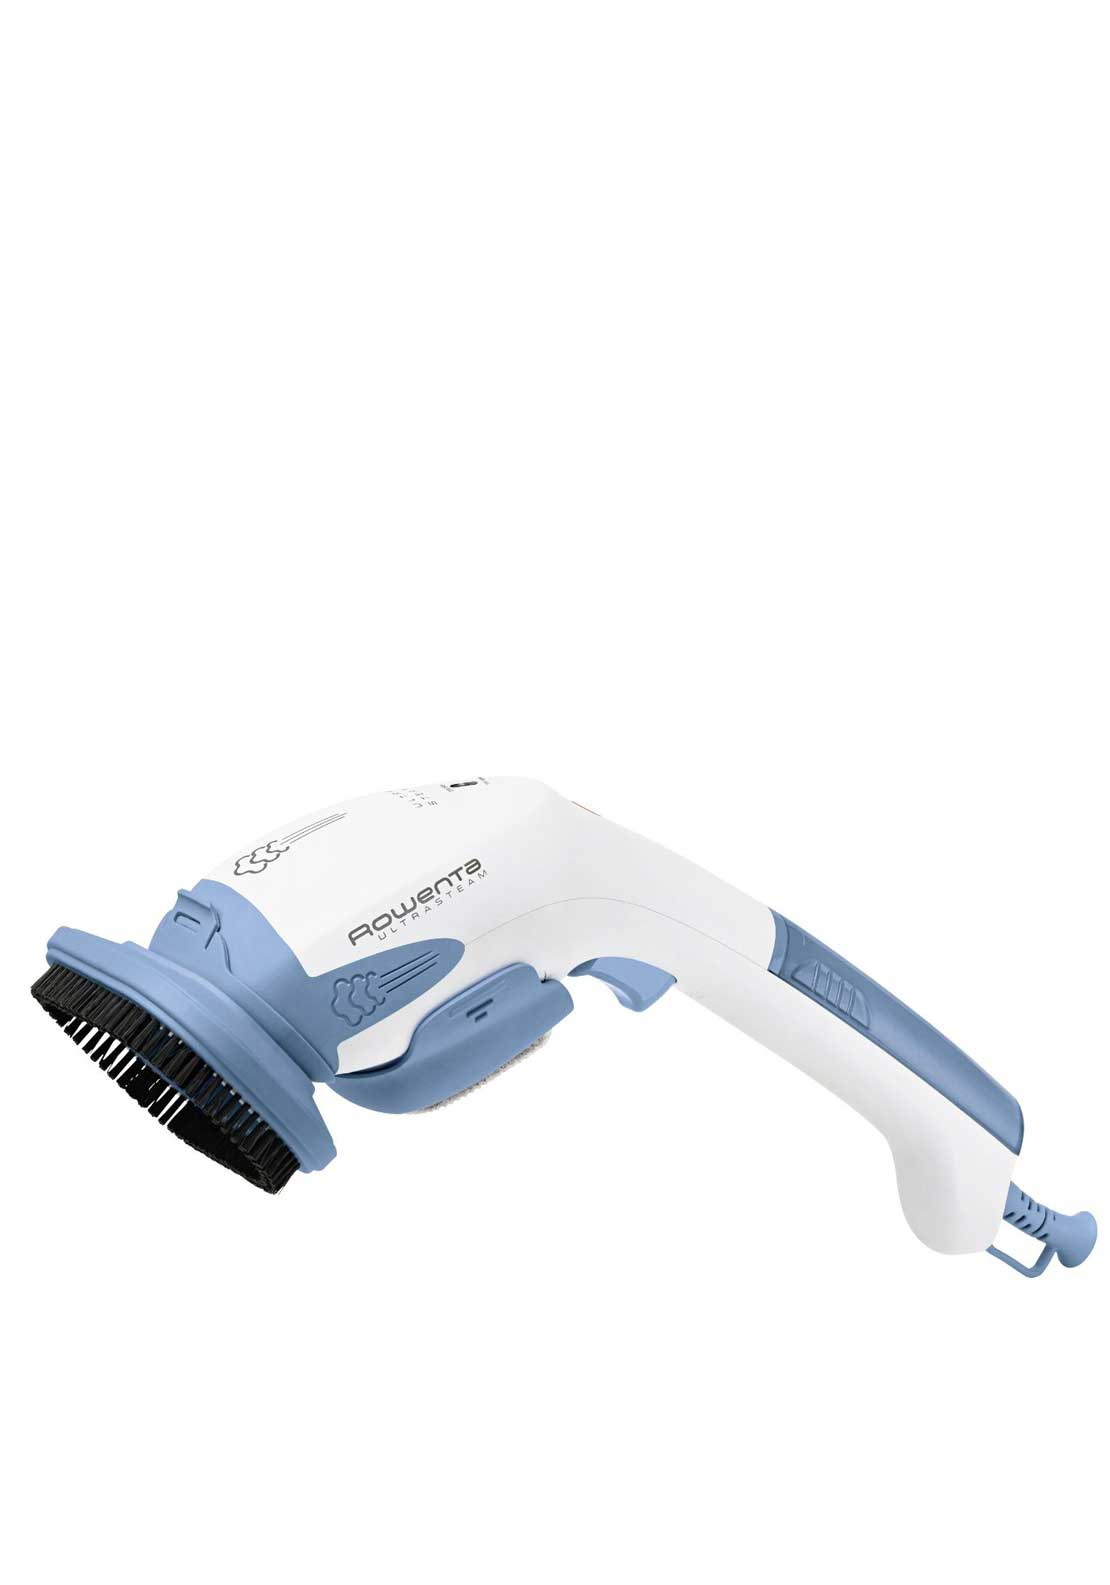 Rowenta Ultrasteam Handheld Steamer, White and Blue